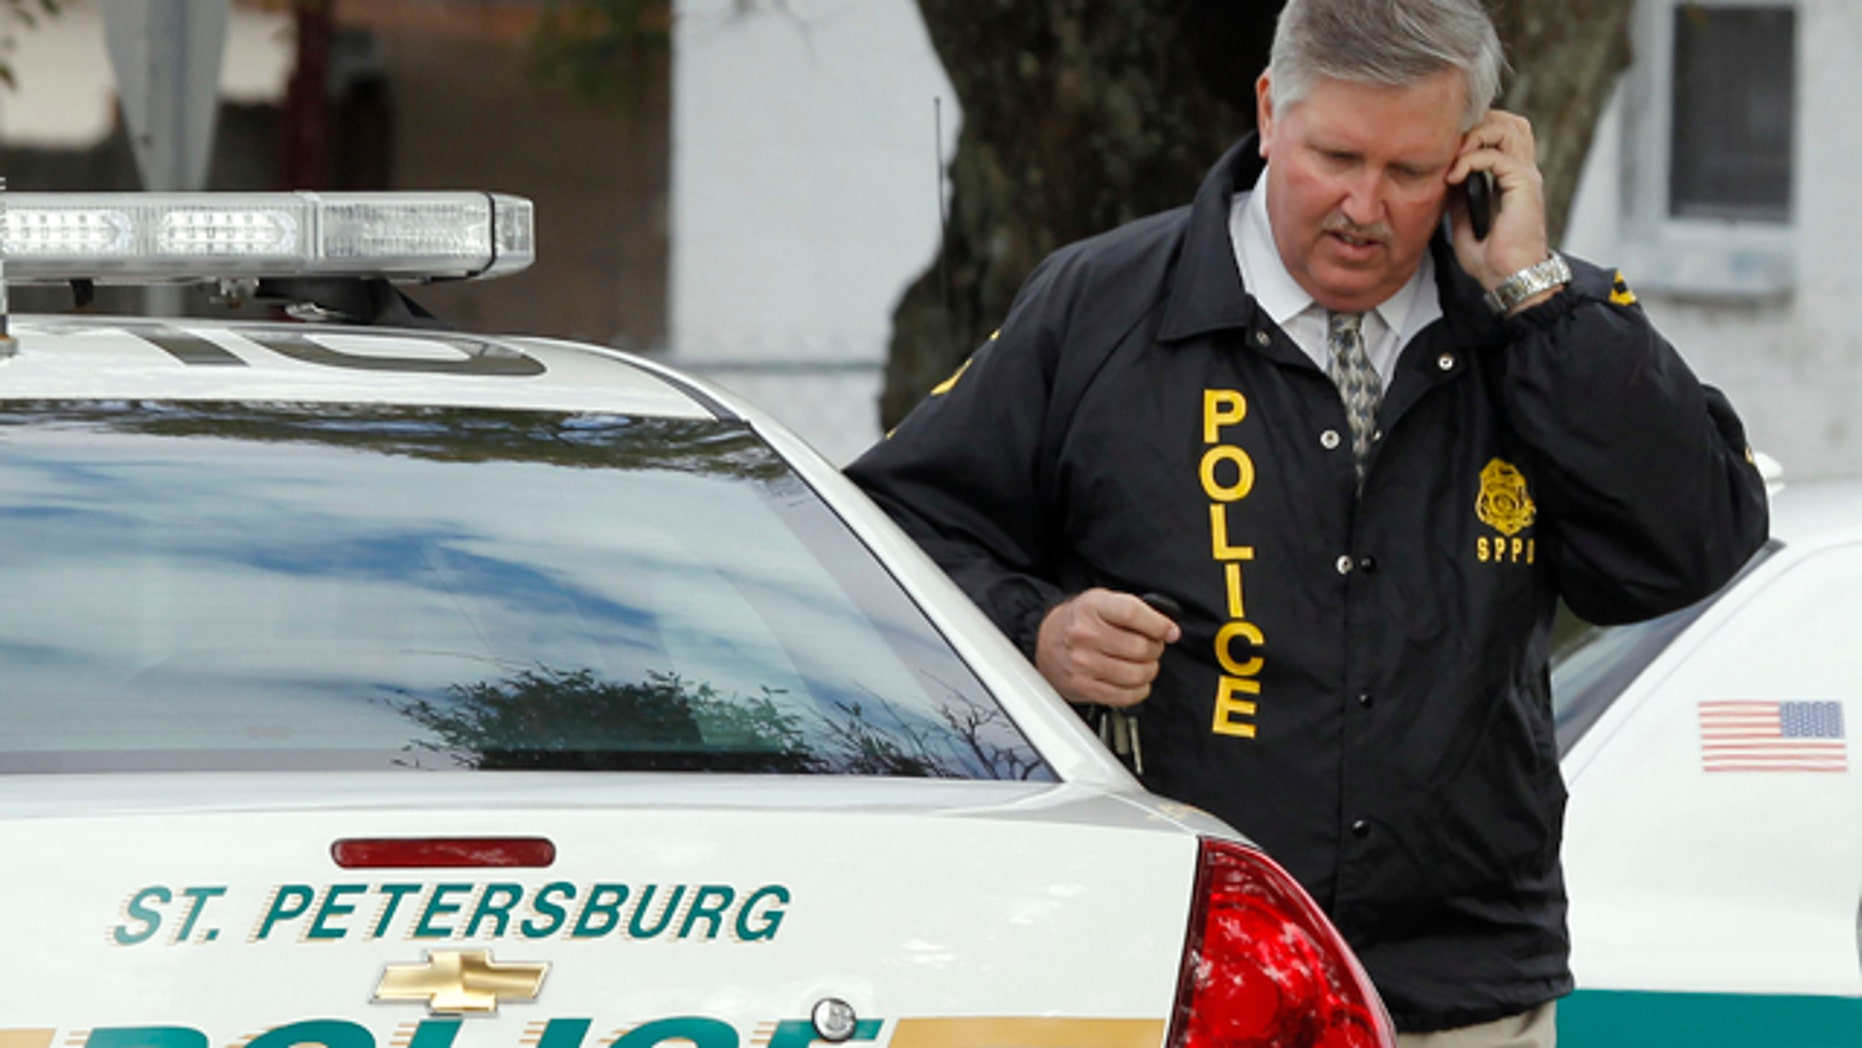 Jan. 24: St. Petersburg Police Chief Chuck Harmon talks on a cell phone as he walks from the scene where a U.S. Marshal and two St. Petersburg police officers were shot while trying to serve an arrest warrant in St. Petersburg, Fla. (AP)